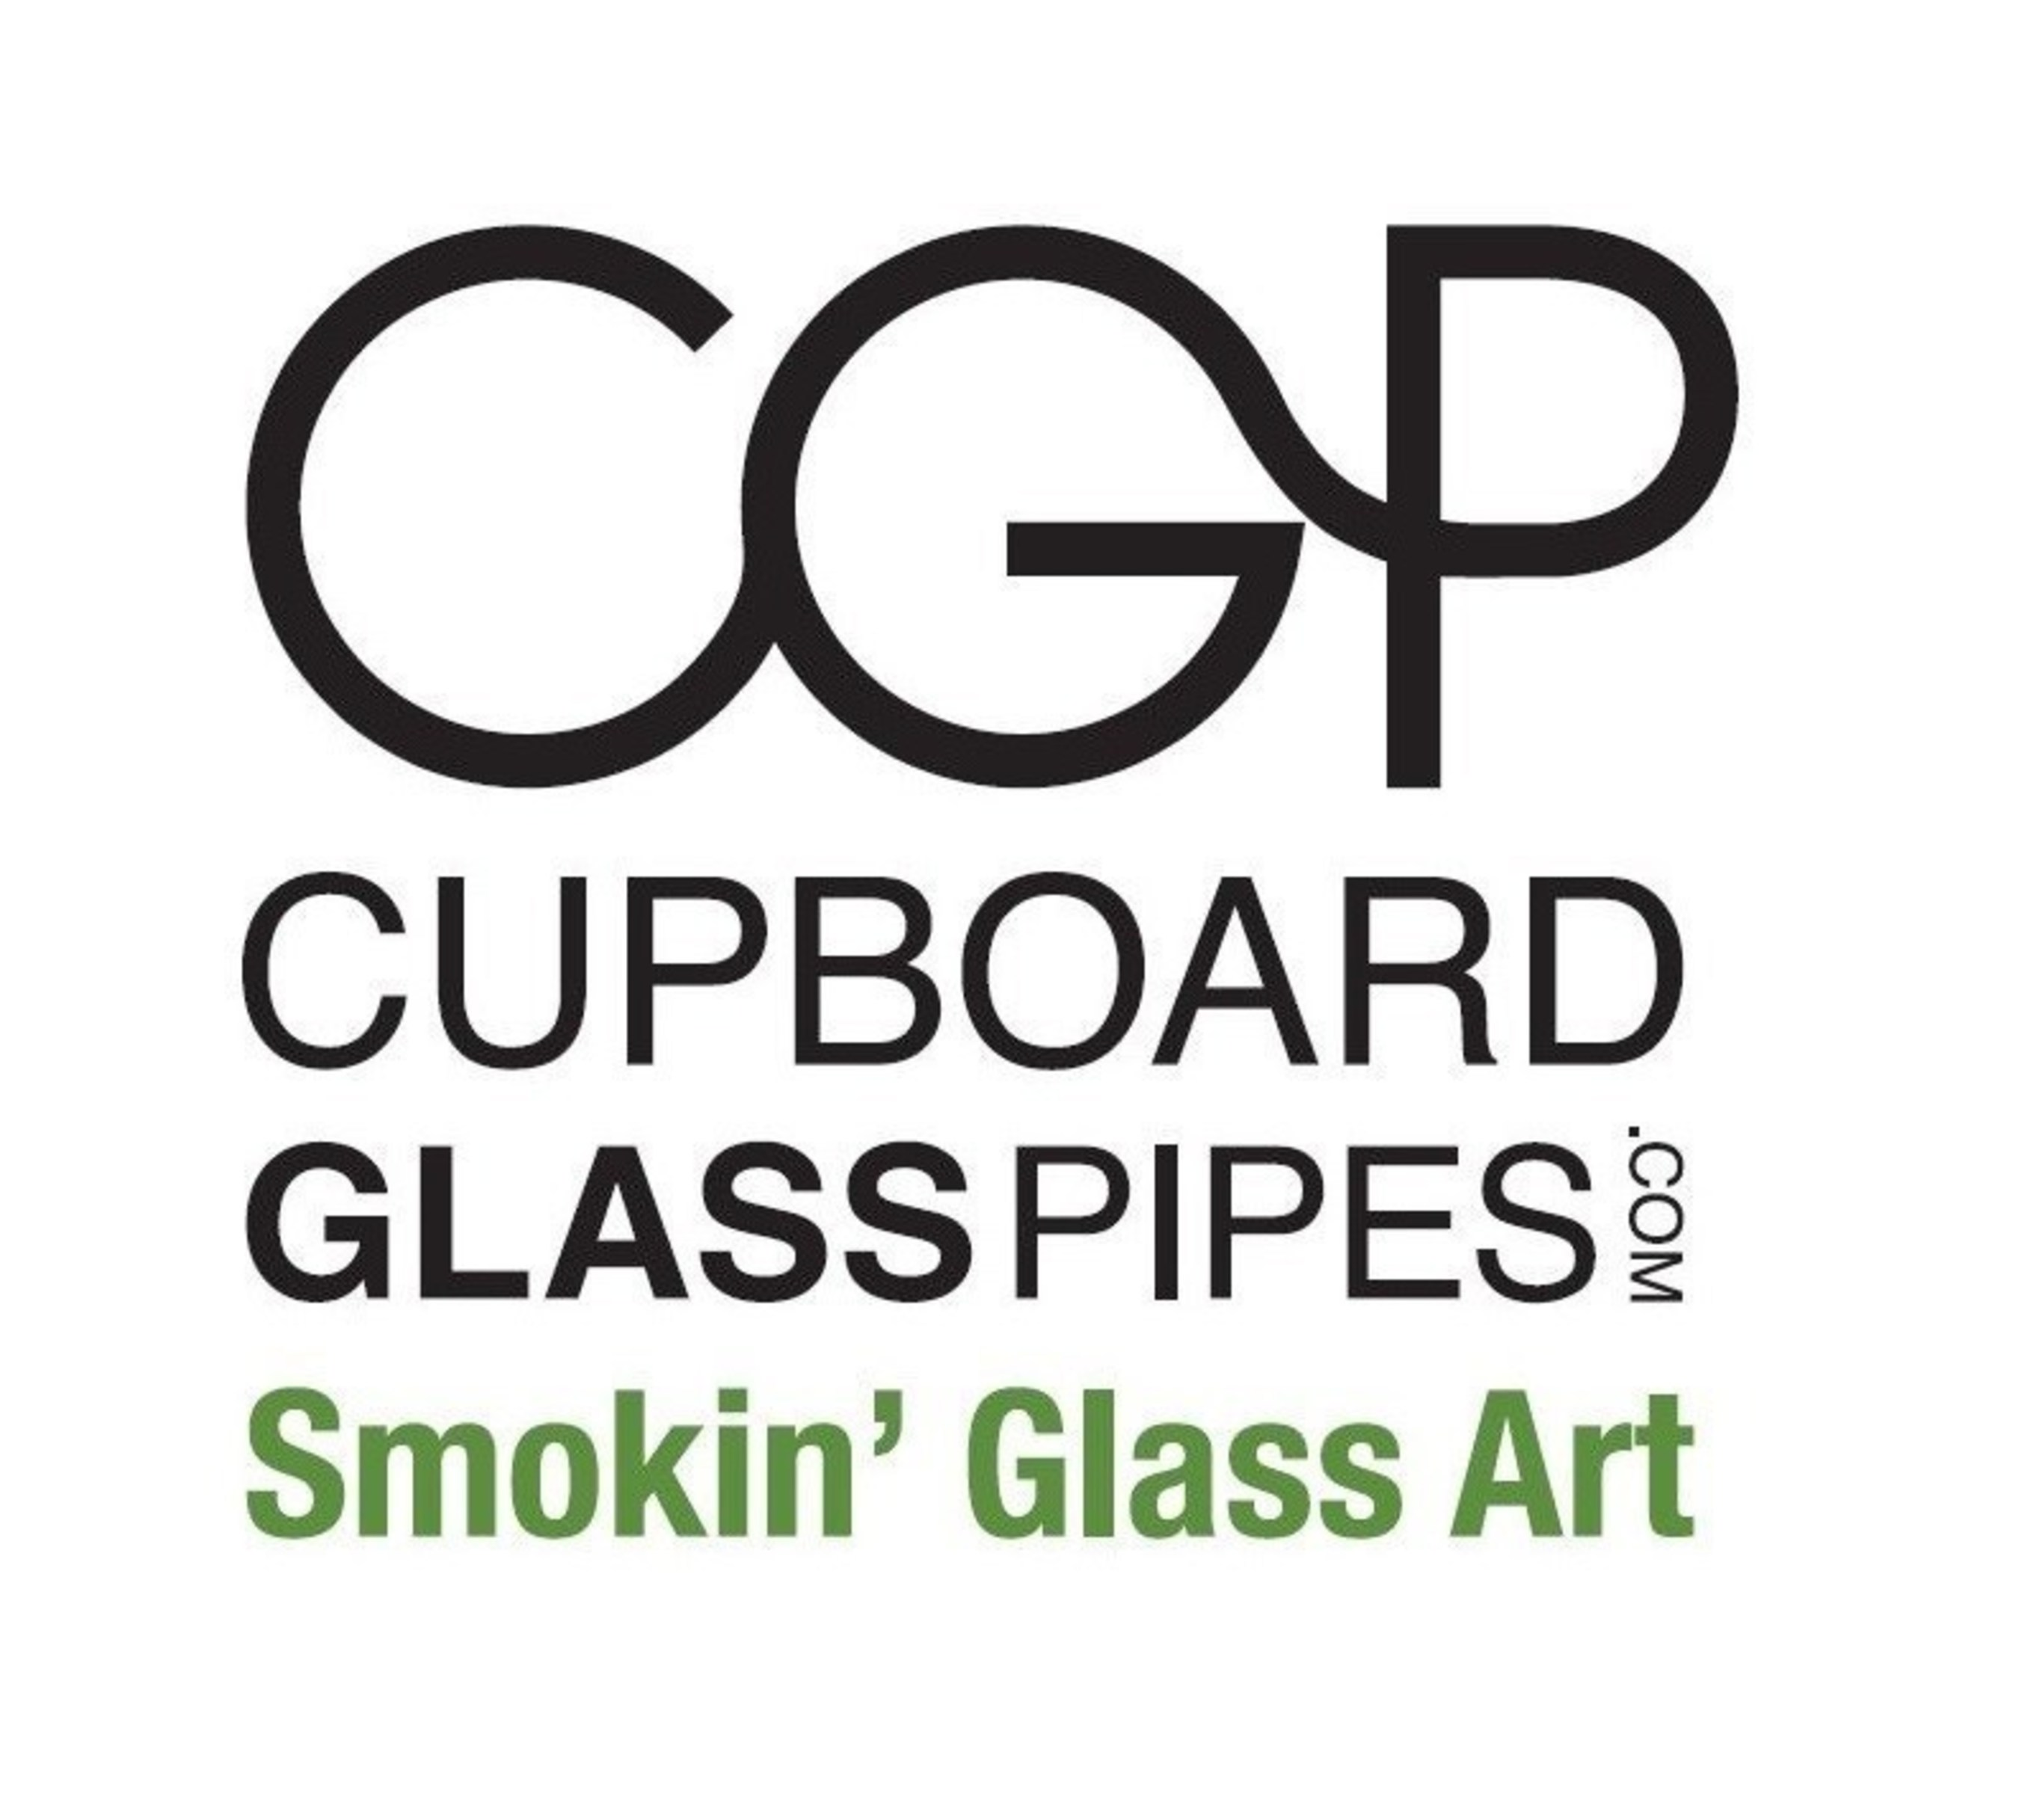 Introducing Cupboard Glass Pipes now ONLINE